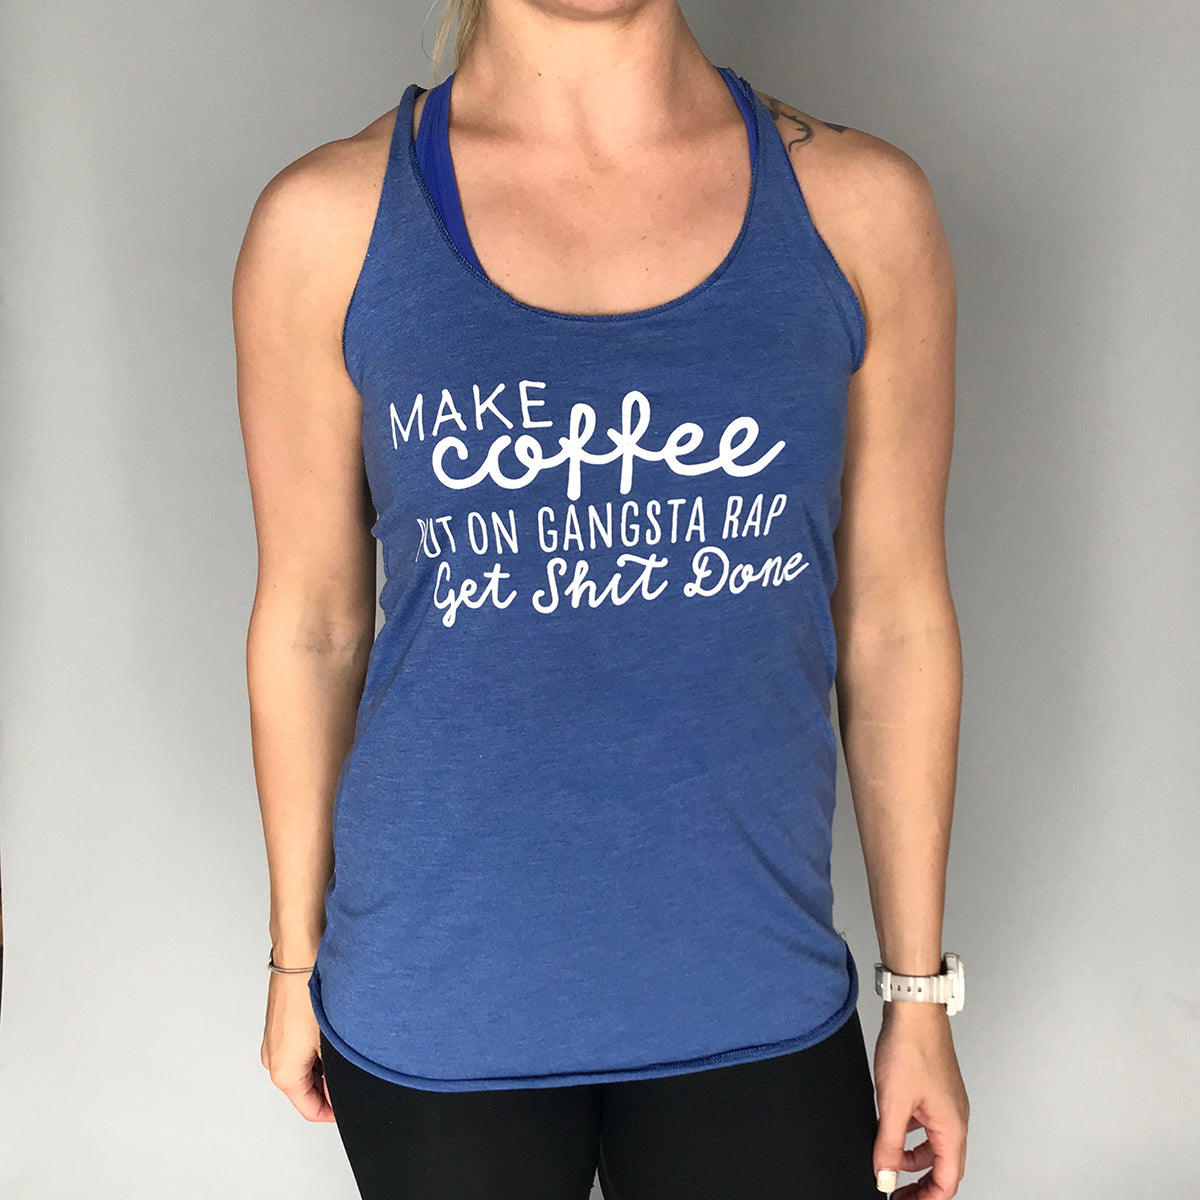 Make Coffee Put on Gangsta Rap Get Shit Done {Tank Top}